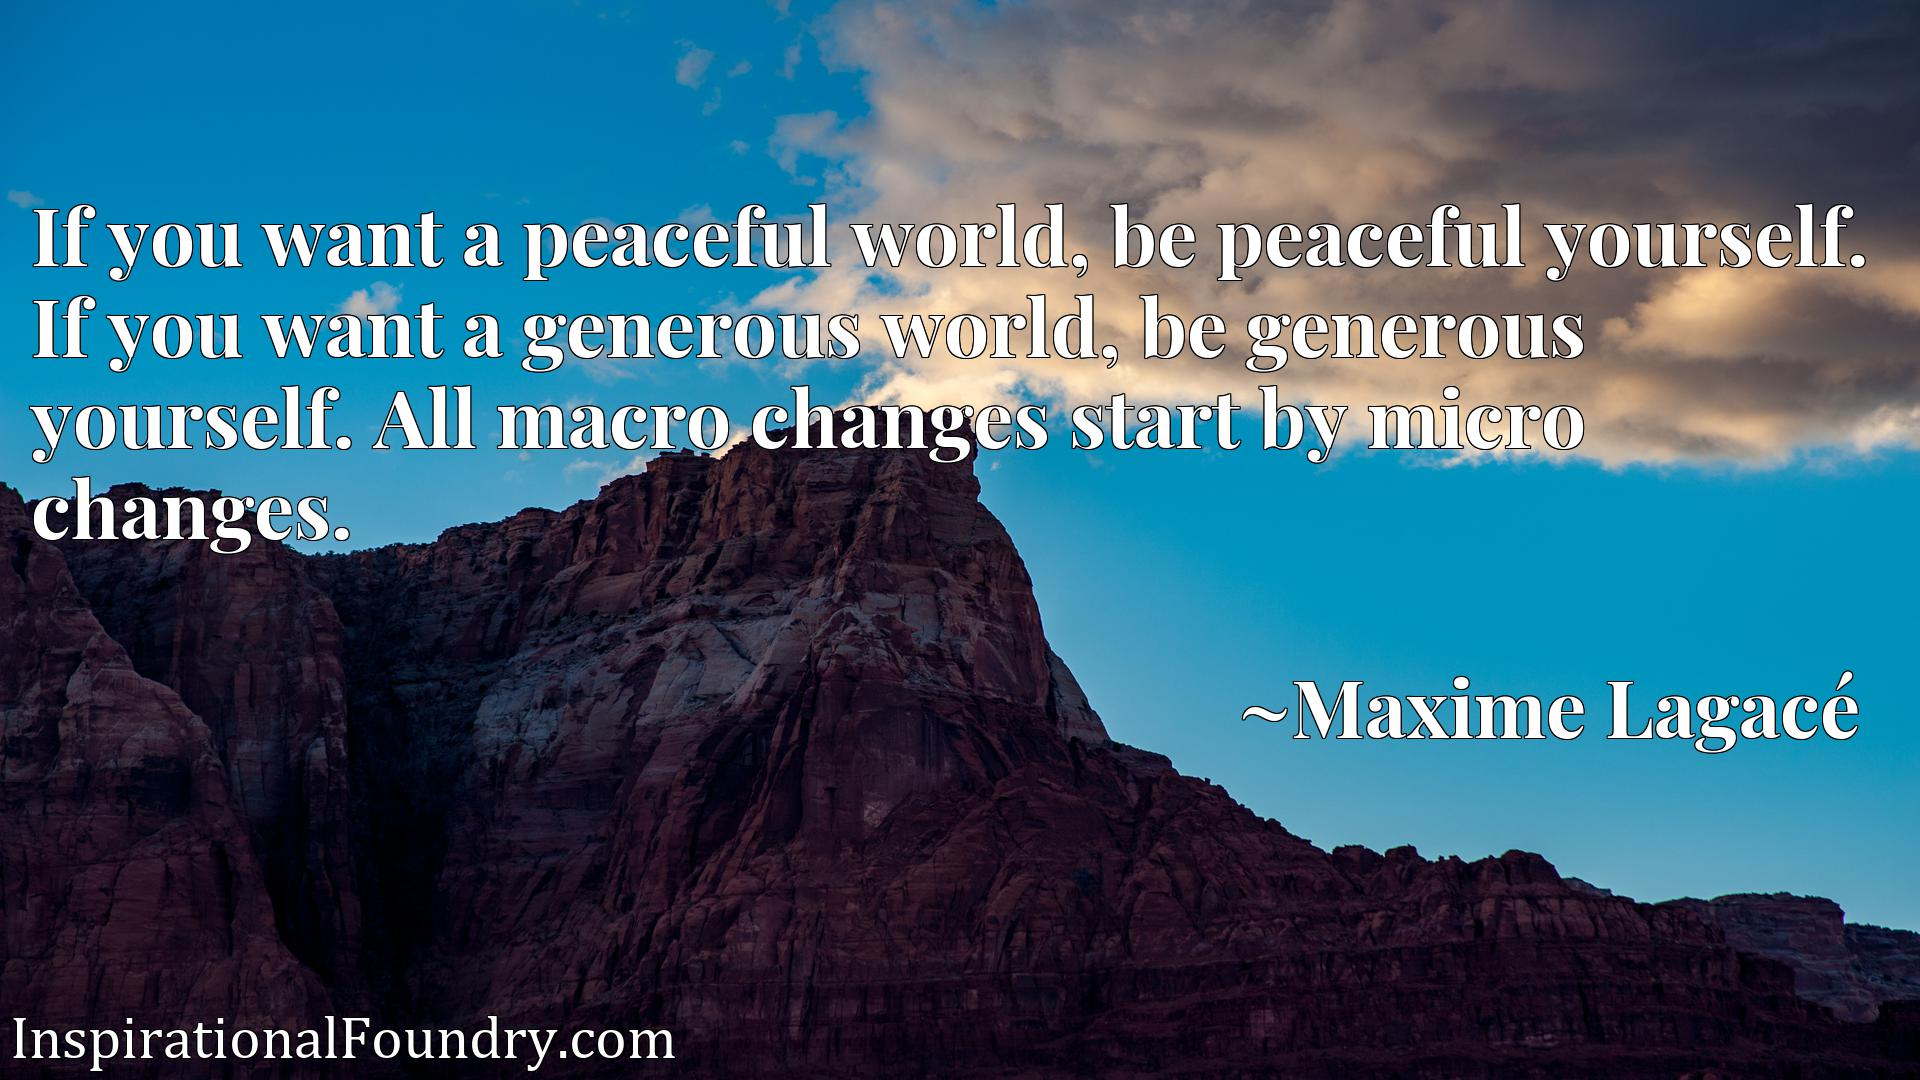 If you want a peaceful world, be peaceful yourself. If you want a generous world, be generous yourself. All macro changes start by micro changes.